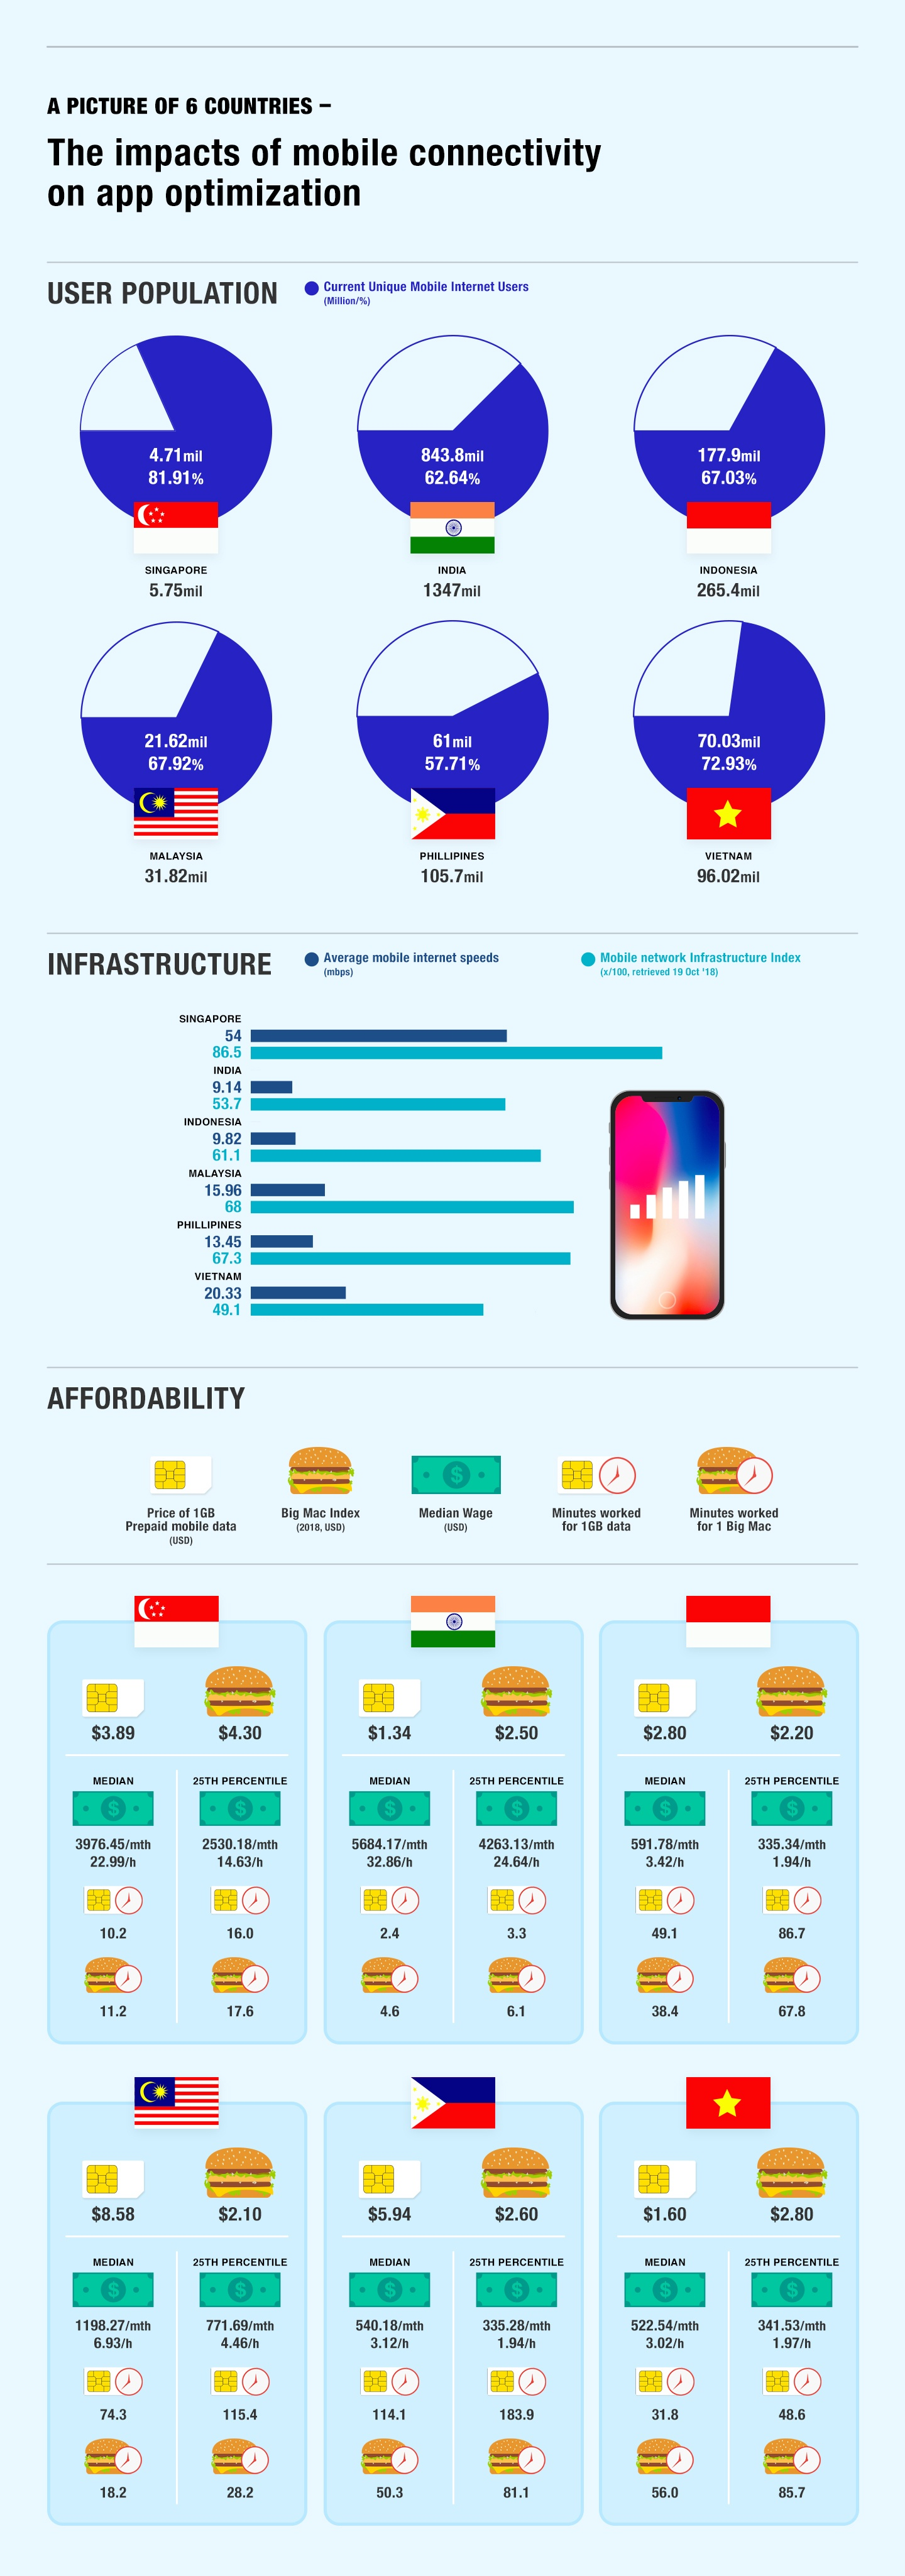 mobile connectivity and app optimisation relationship